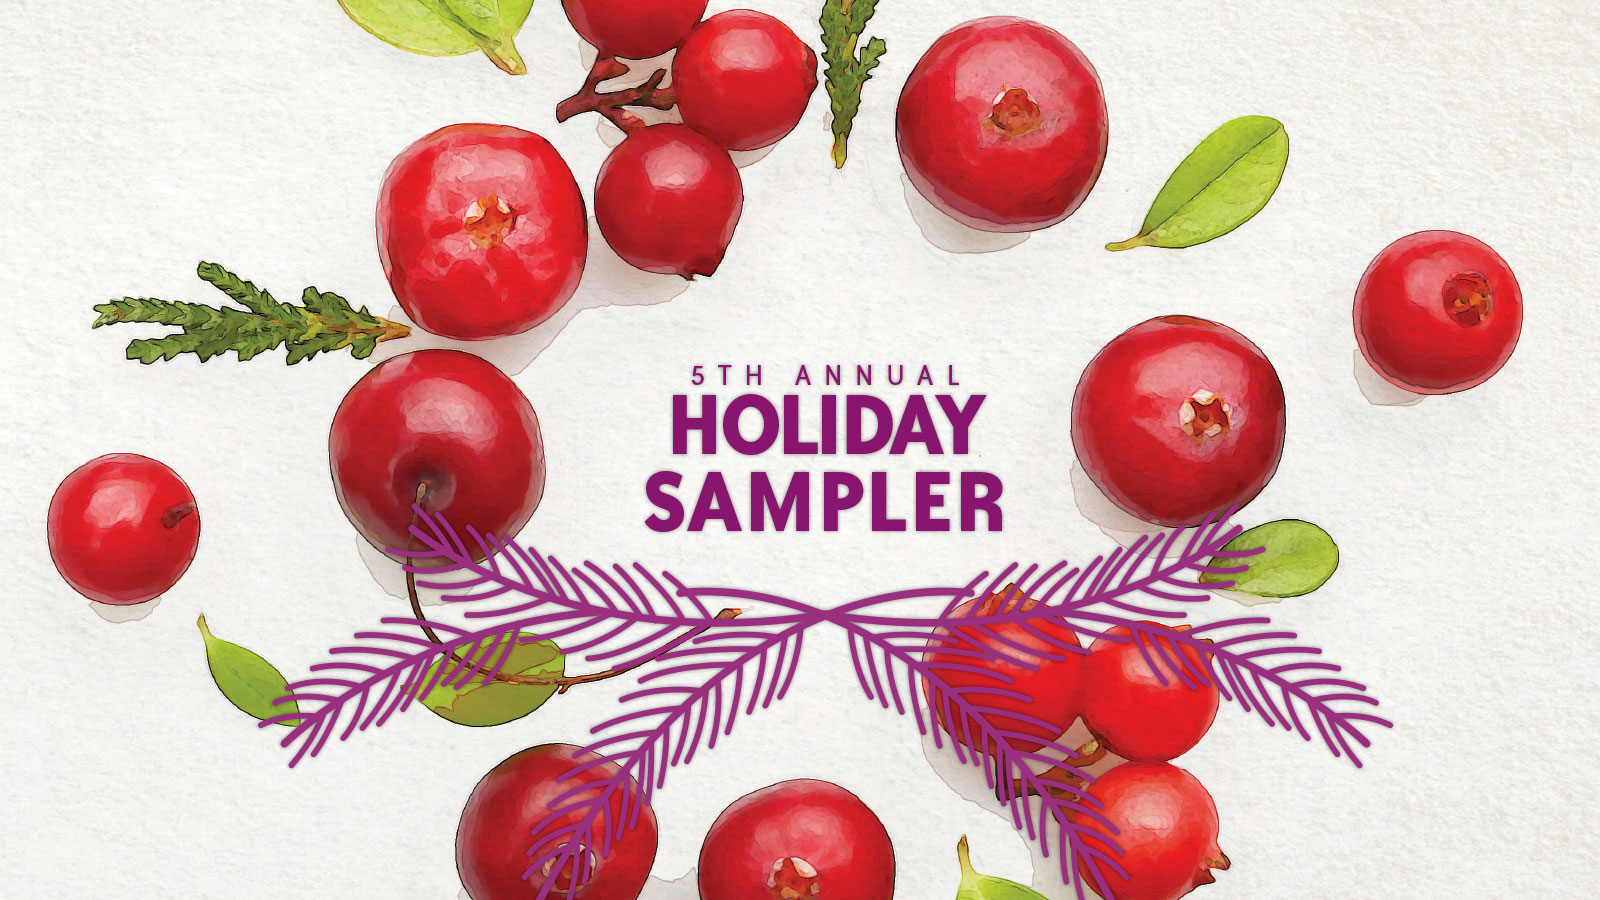 Image for 5th Annual Holiday Sampler